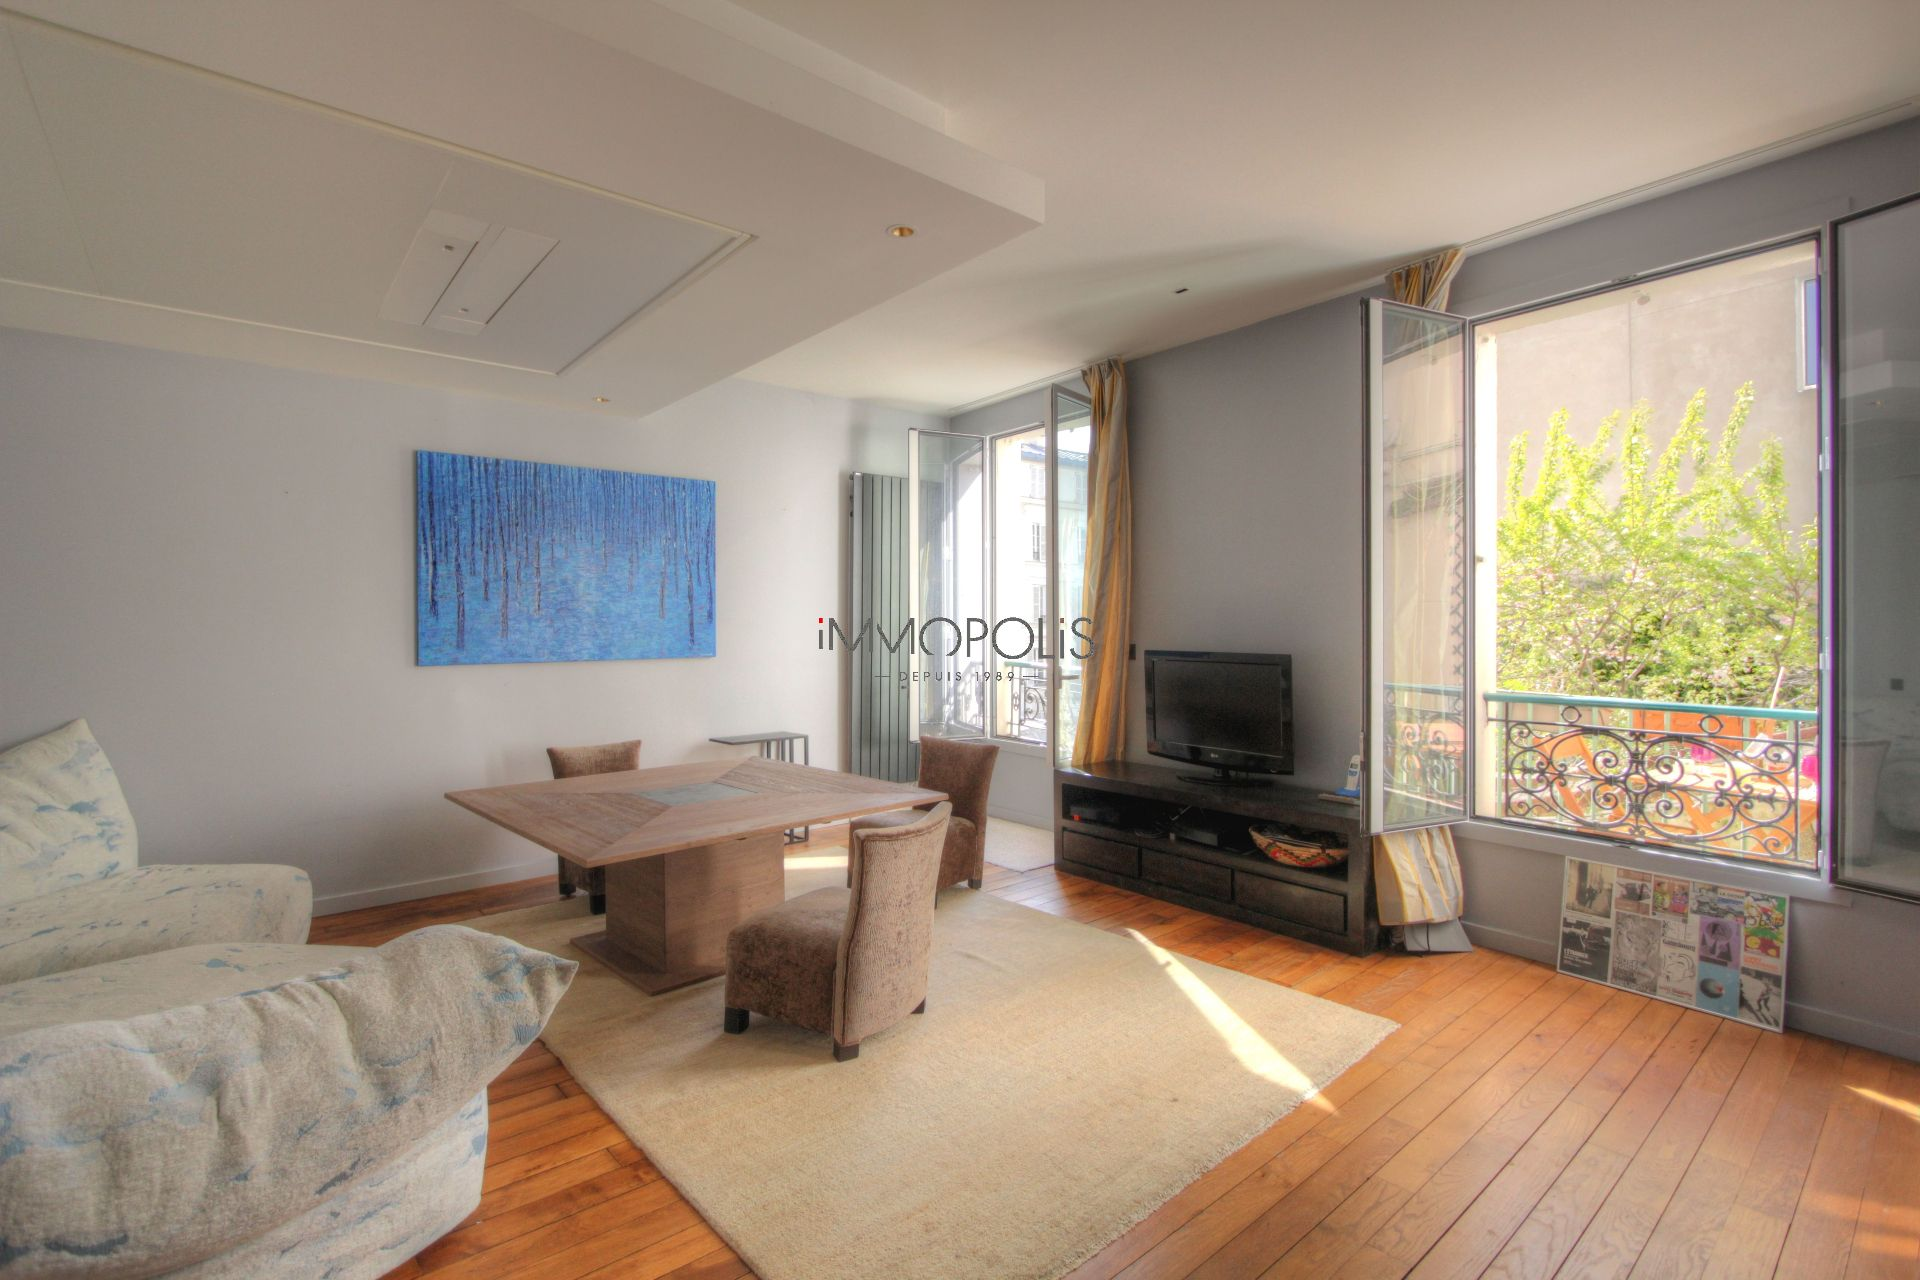 Exceptional in Montmartre (rue Gabrielle): refurbished open space, sumptuous appointments, with balcony and open view! 3